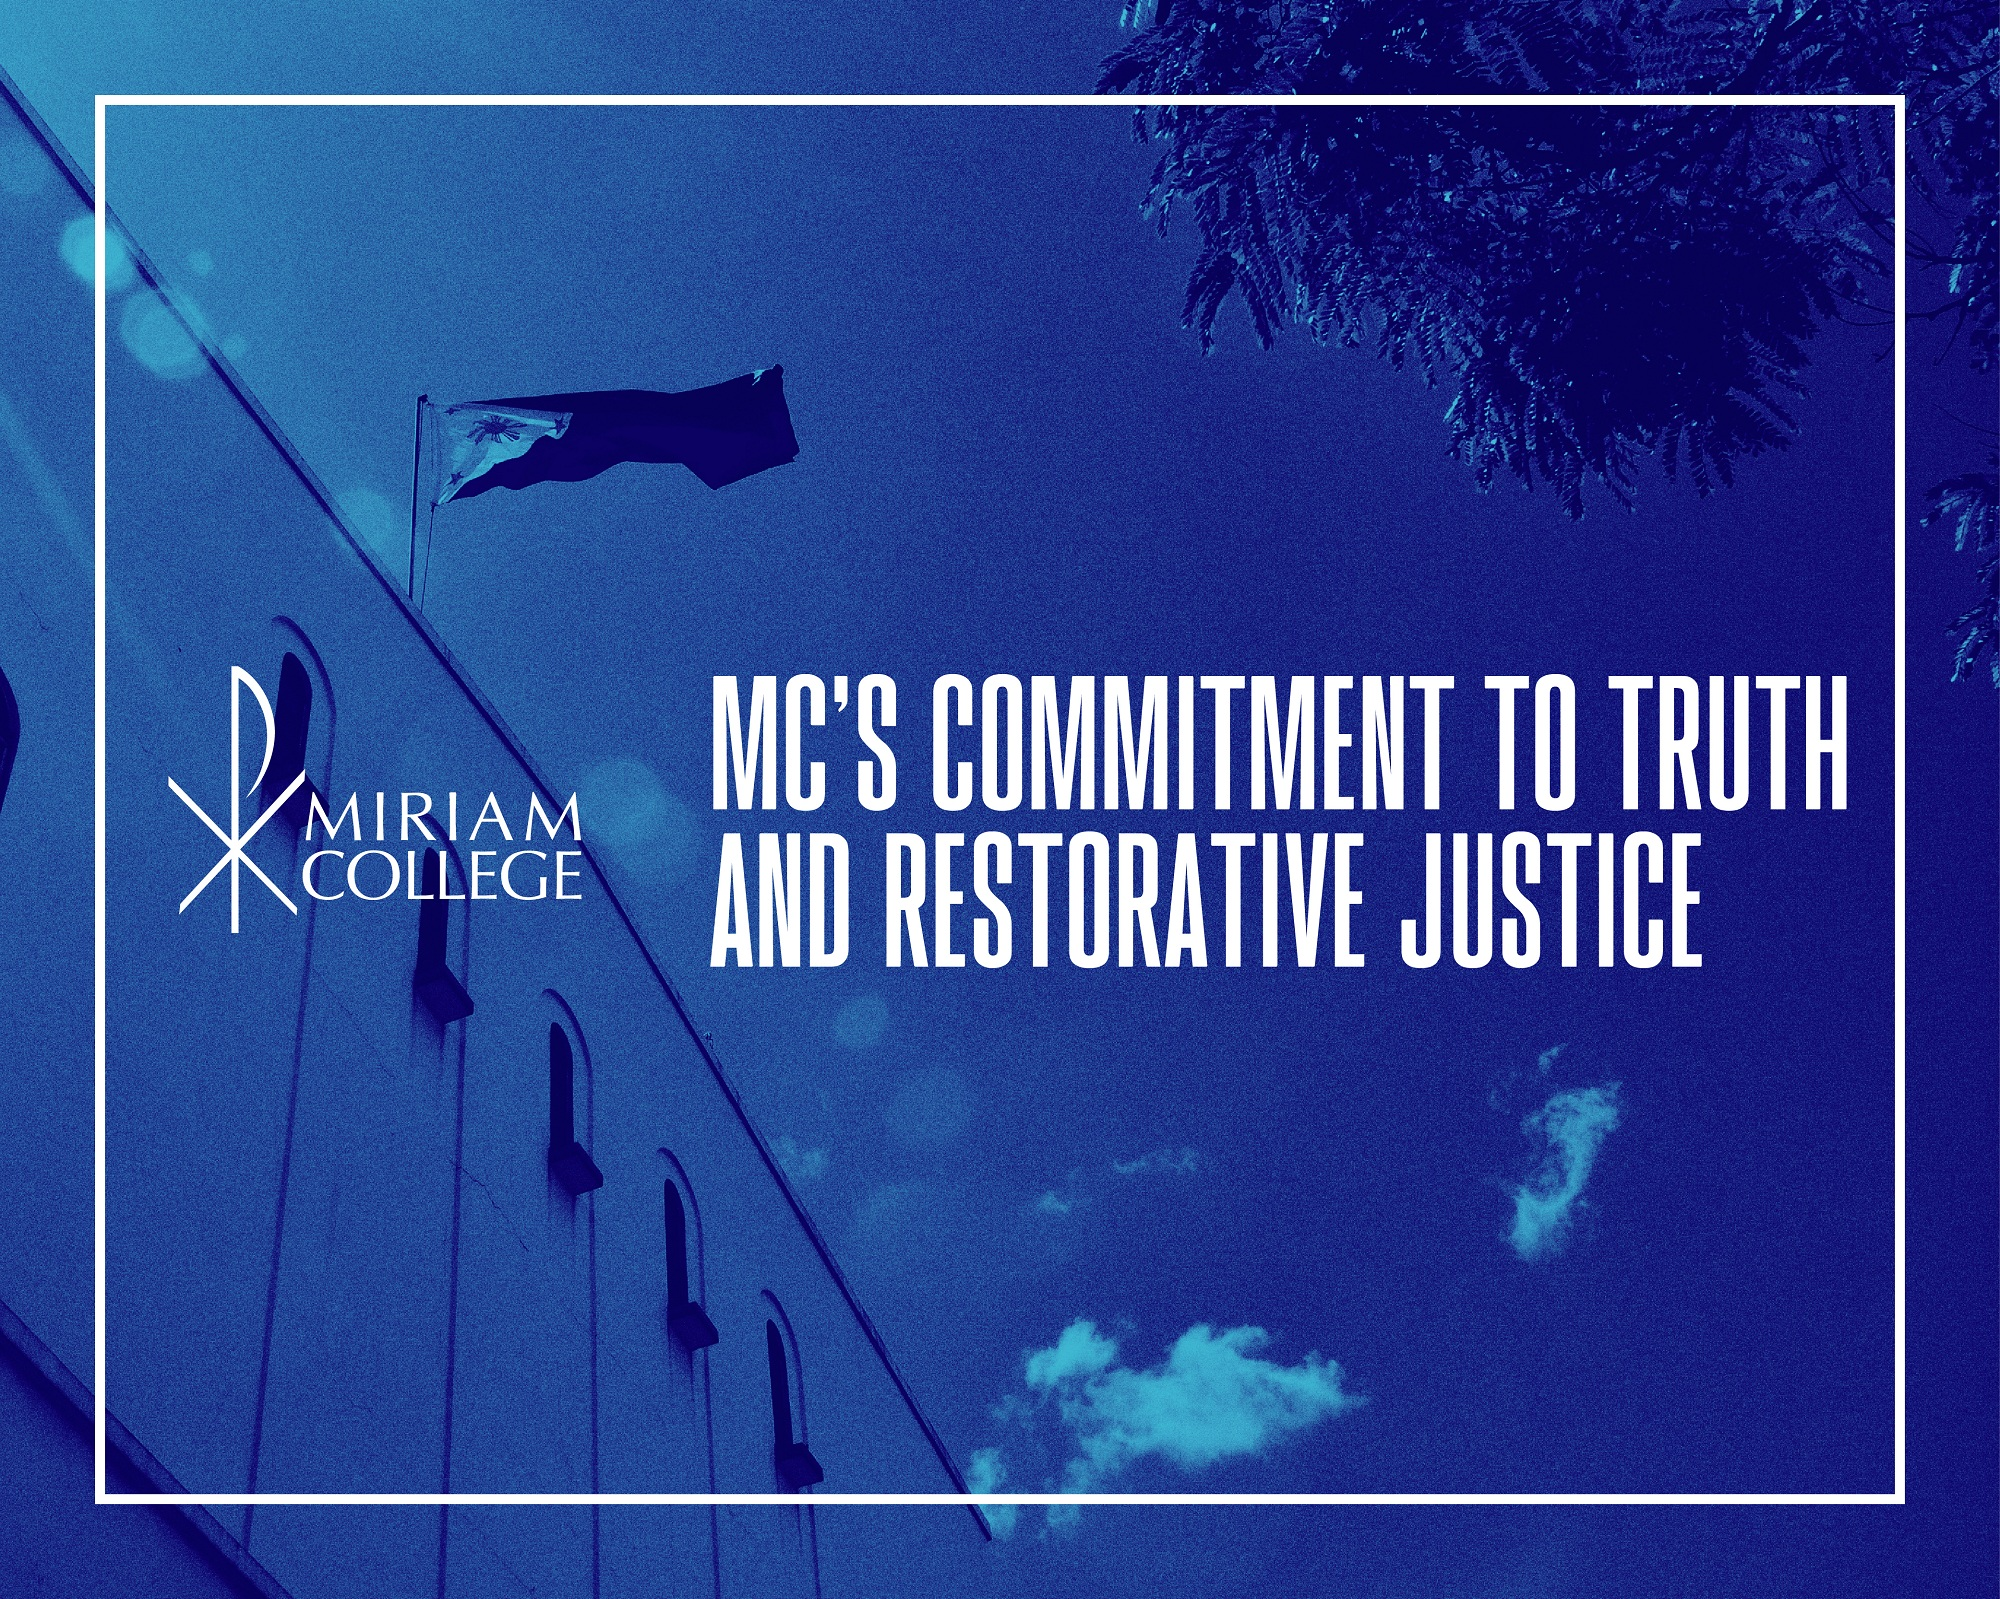 MC'S COMMITMENT TO TRUTH AND RESTORATIVE JUSTICE